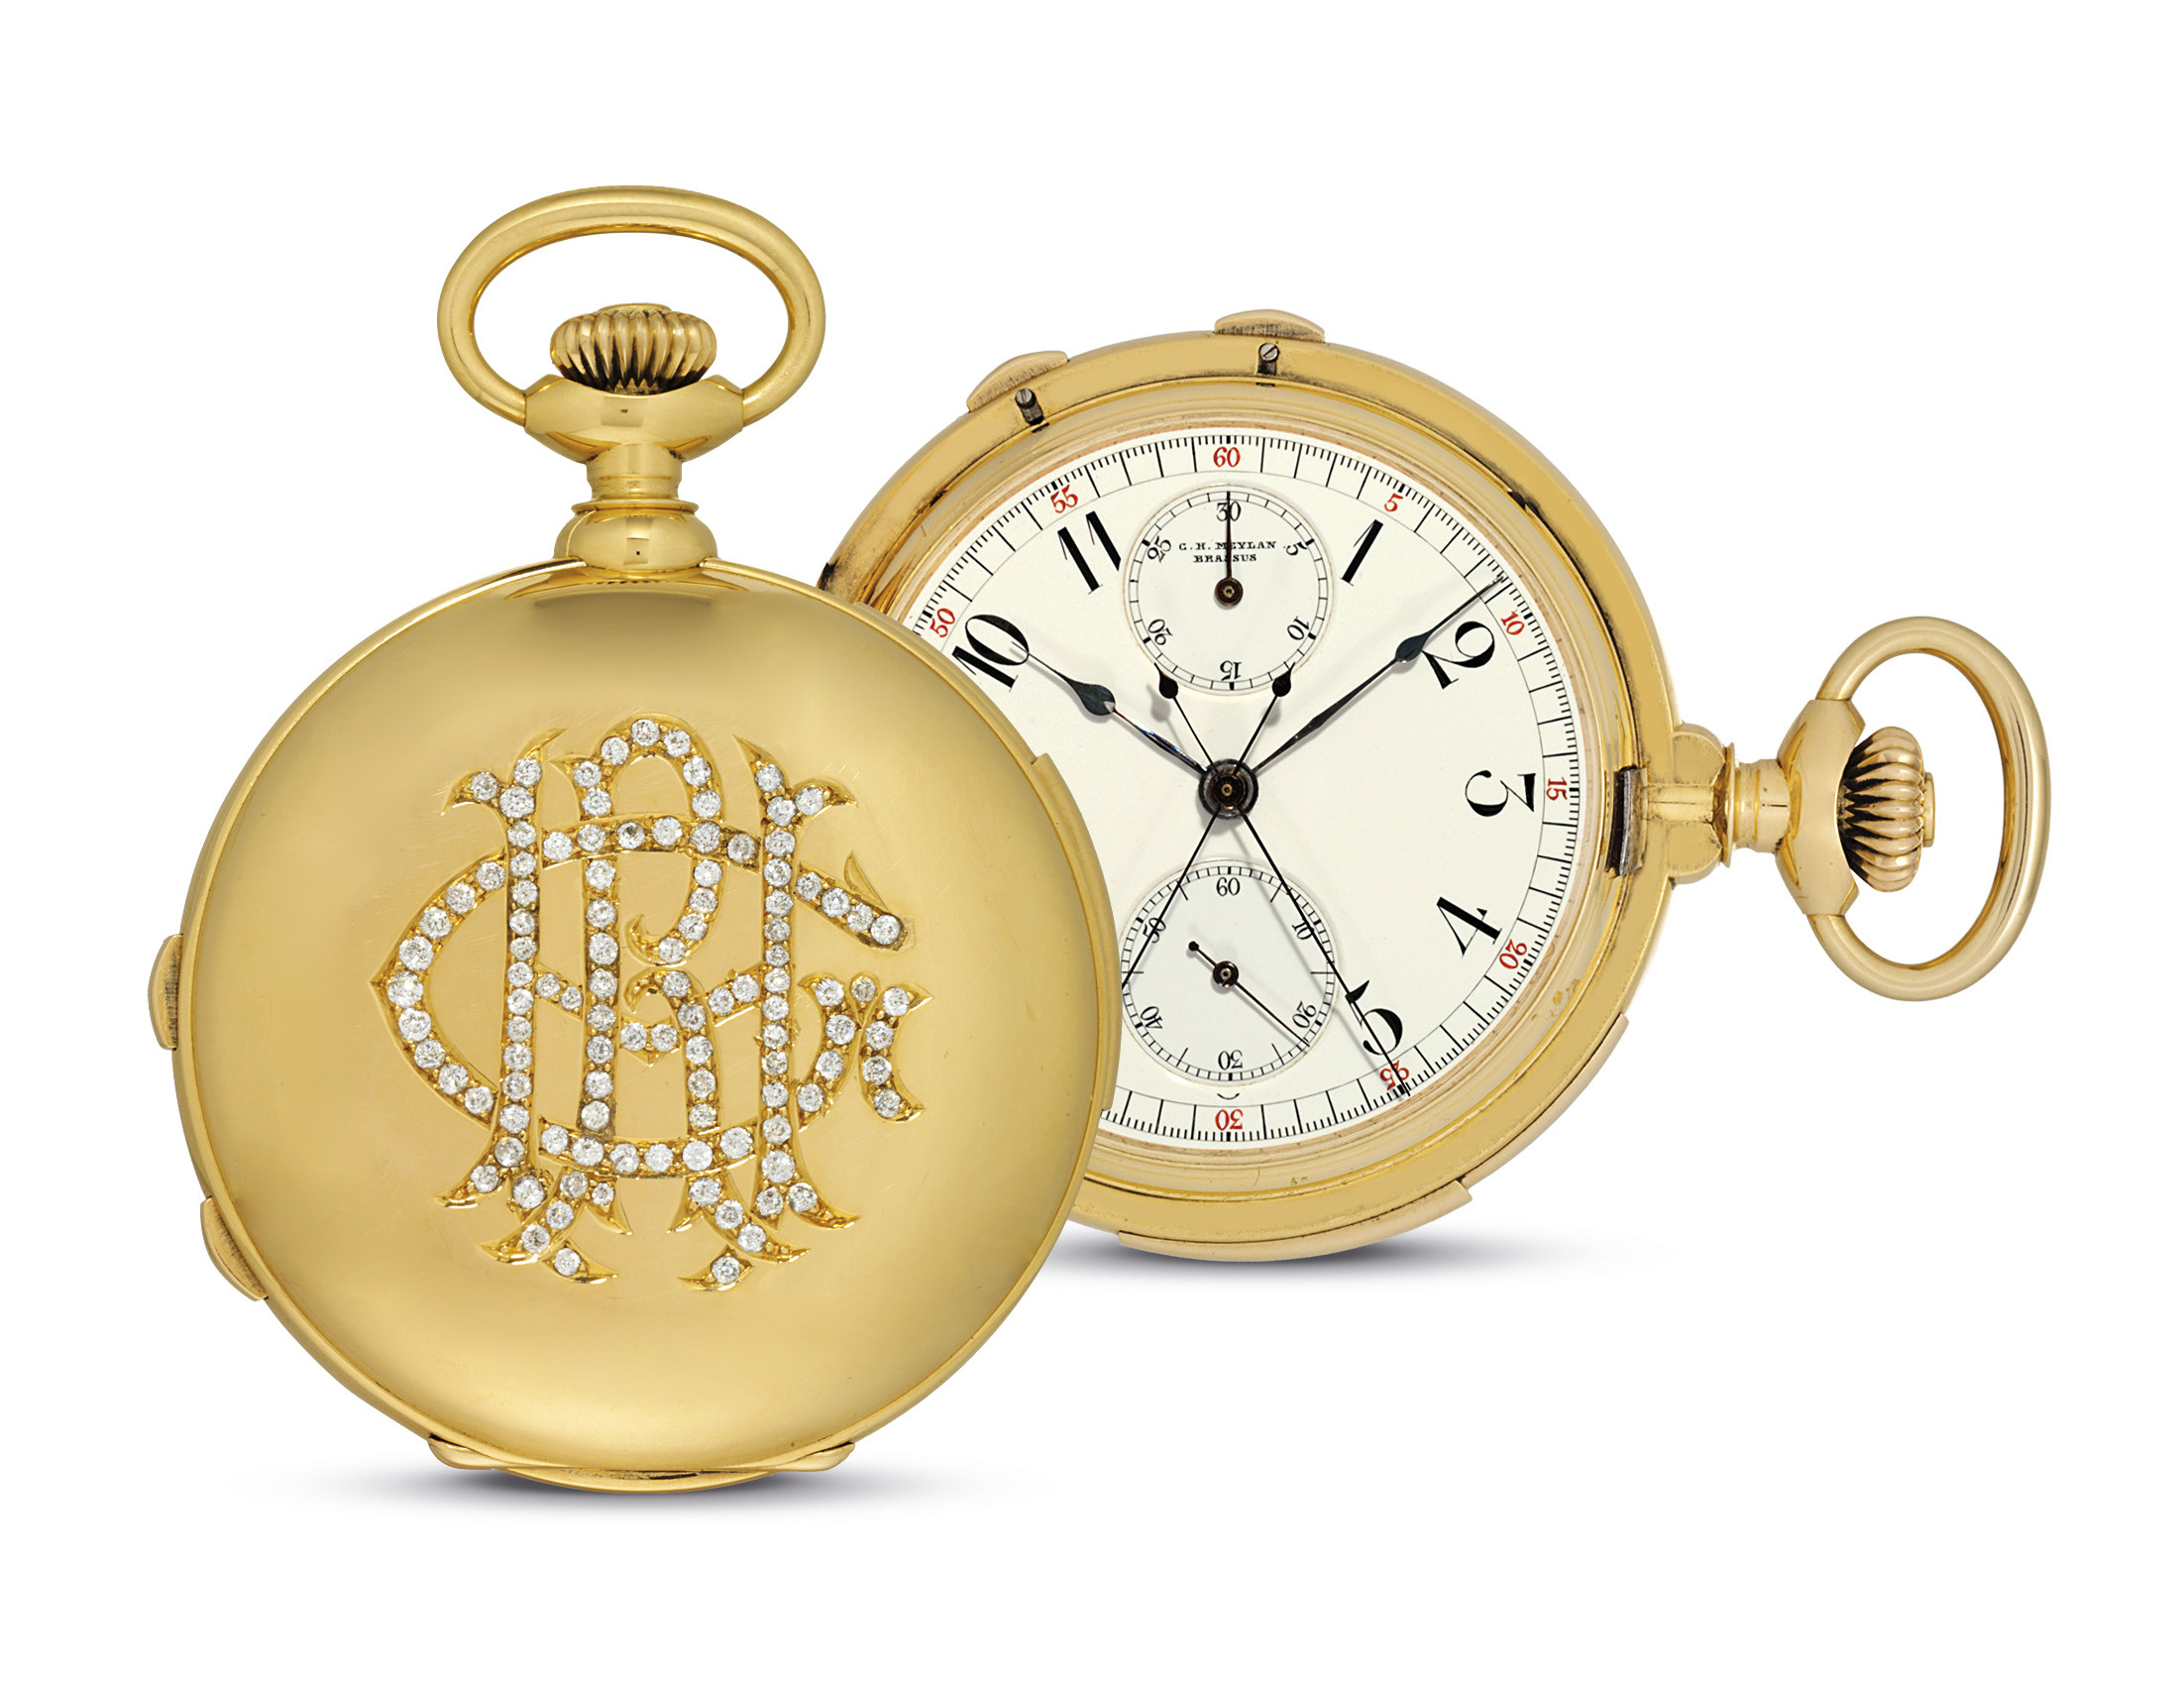 C.H. MEYLAN. A FINE 18K GOLD AND DIAMOND HUNTER CASE MINUTE REPEATING SPLIT SECONDS CHRONOGRAPH KEYLESS LEVER WATCH